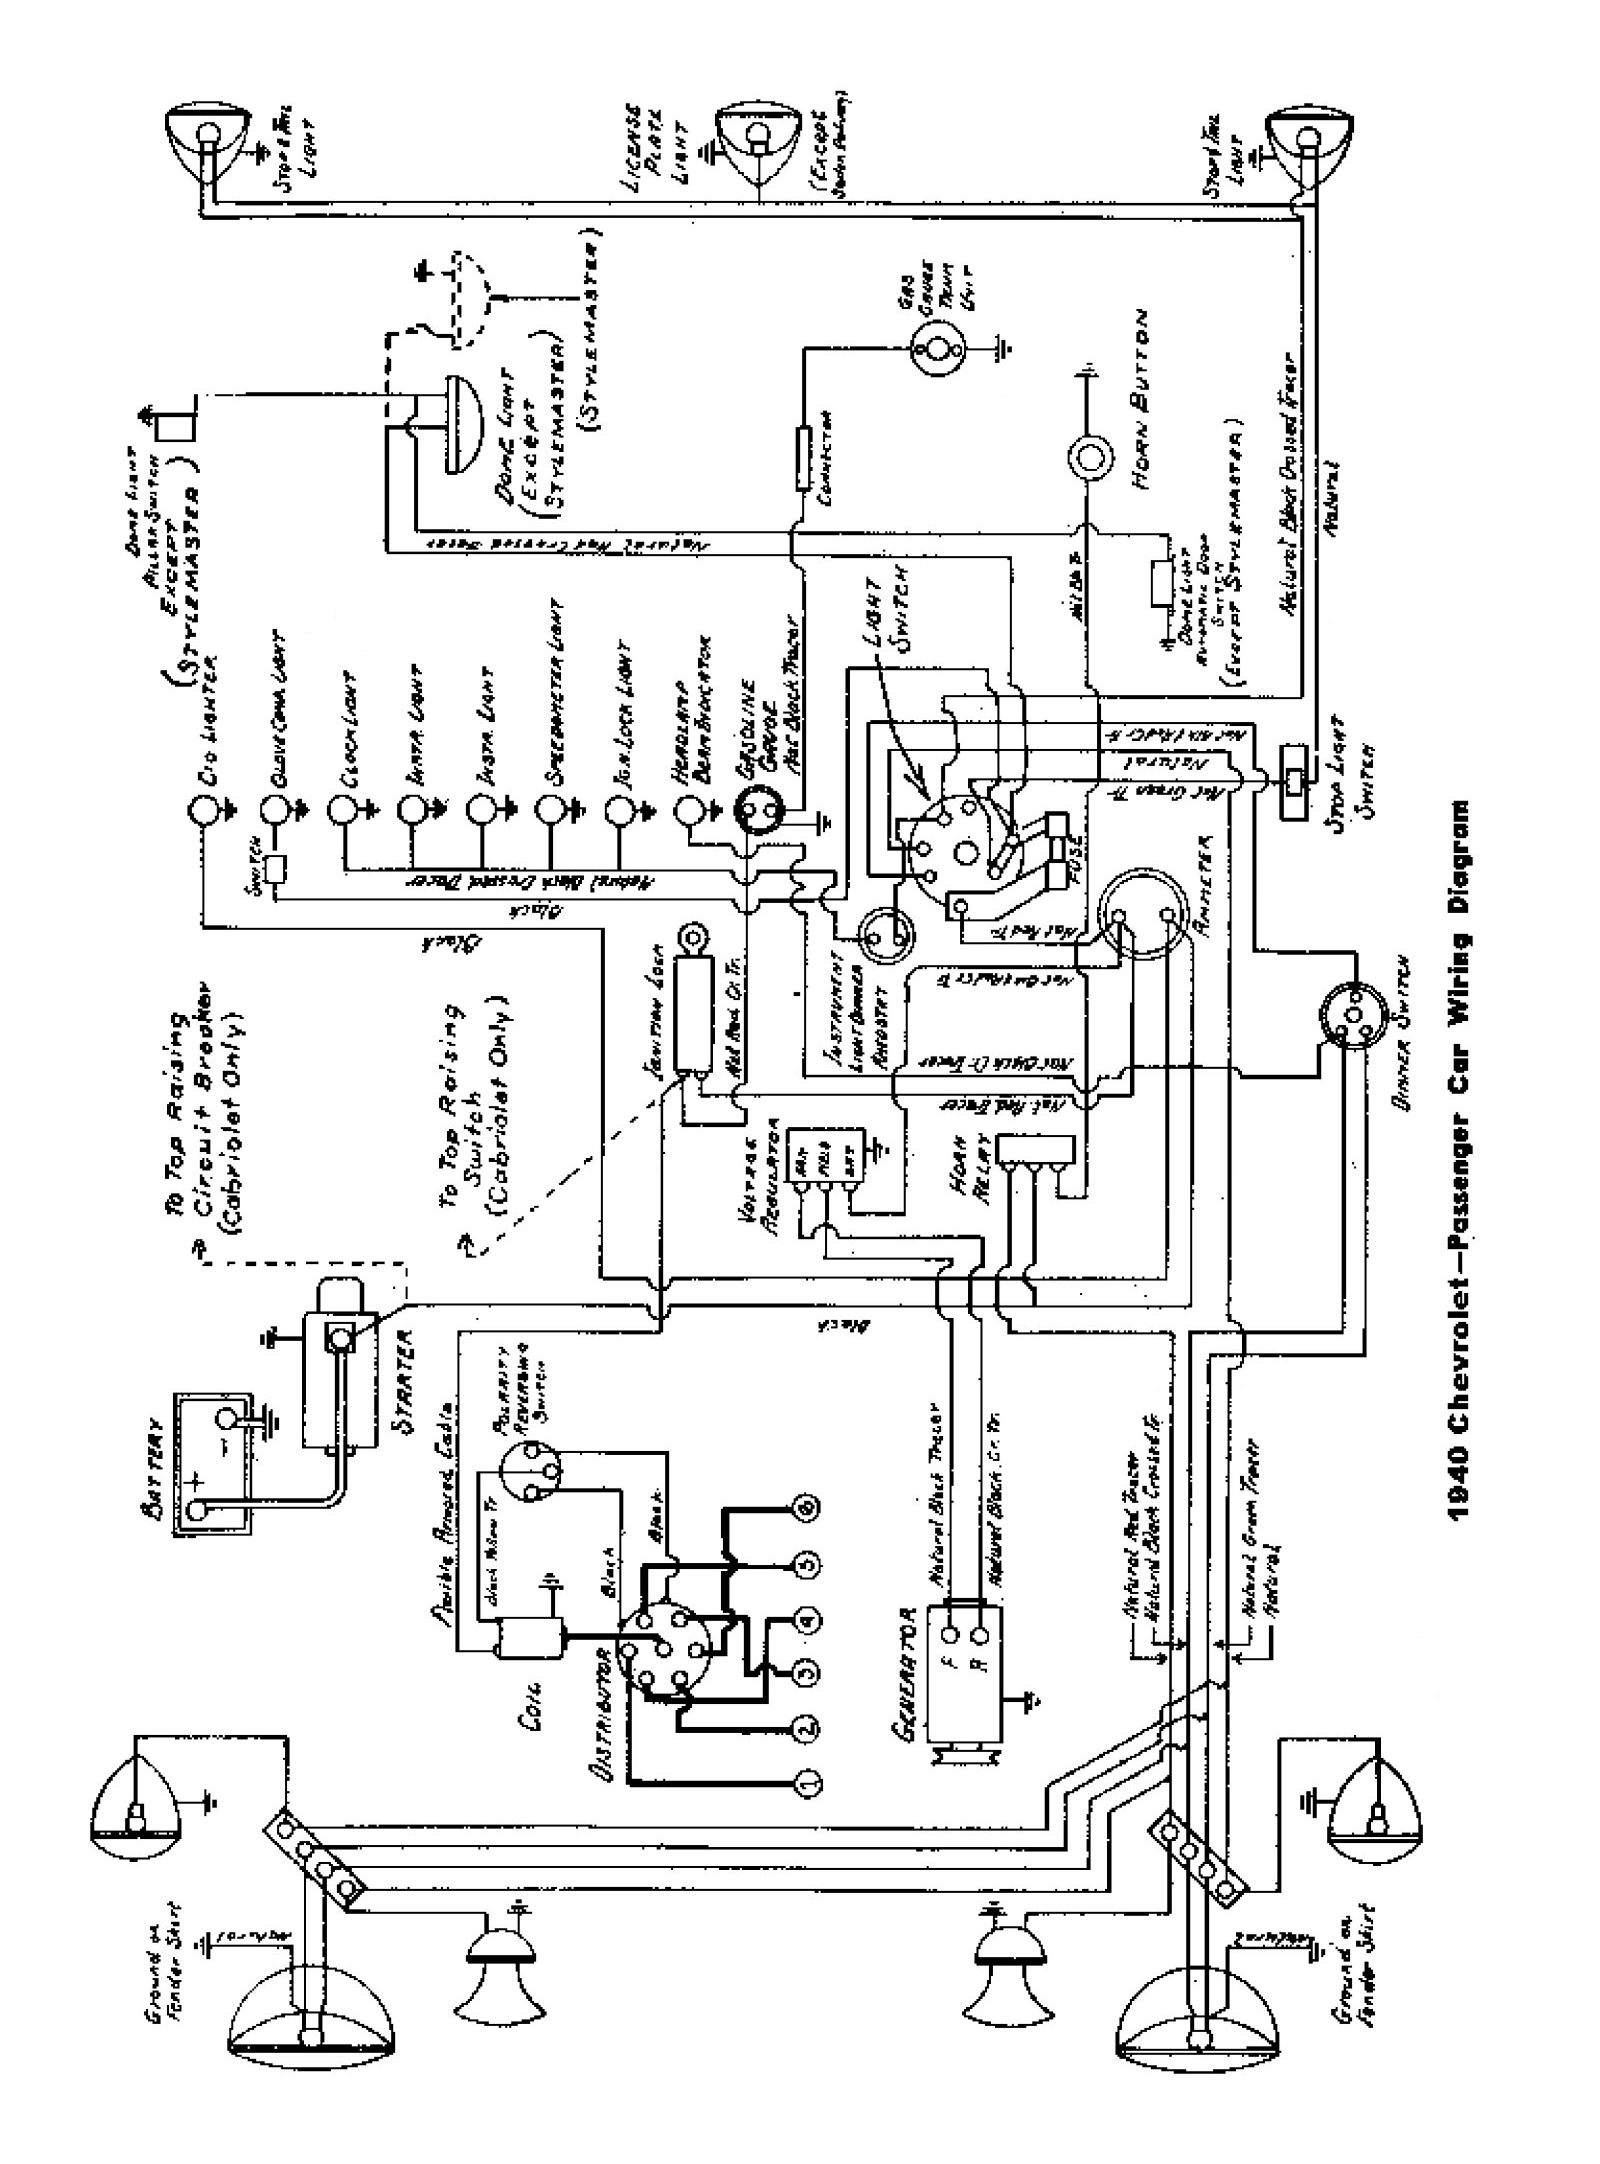 40car chevy wiring diagrams painless wiring harness diagram at bayanpartner.co